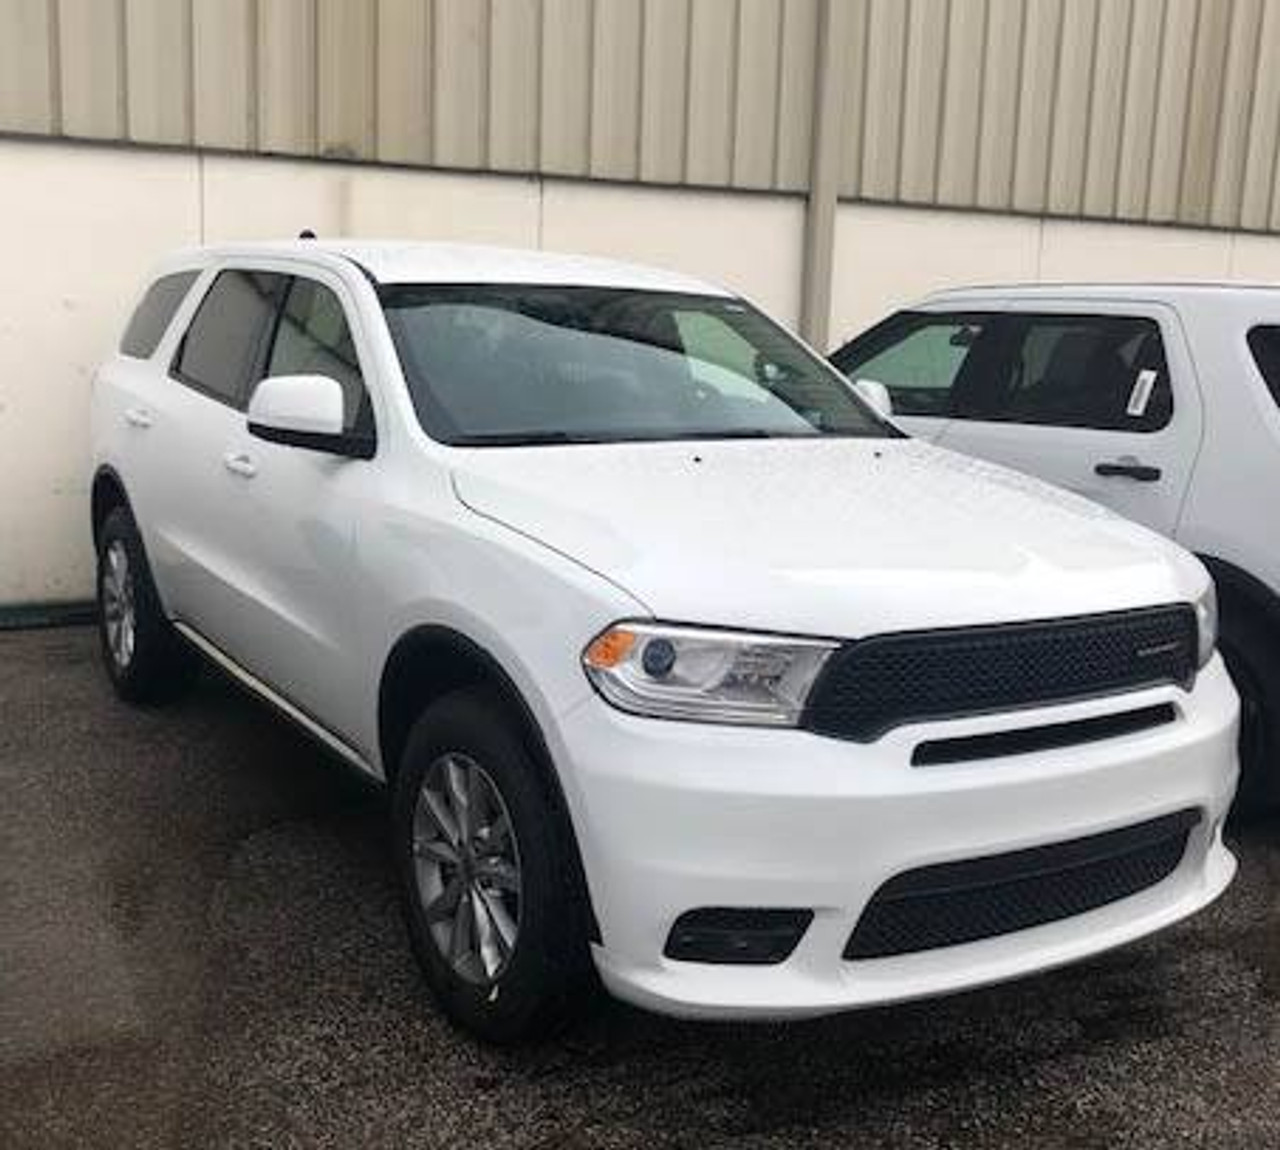 New 2019 White Dodge Durango PPV Law Enforcement Package V6 AWD All-Wheel Drive, ready to be built as an Unmarked Slick-Top Admin Package, choose any color LED Lights, + Delivery